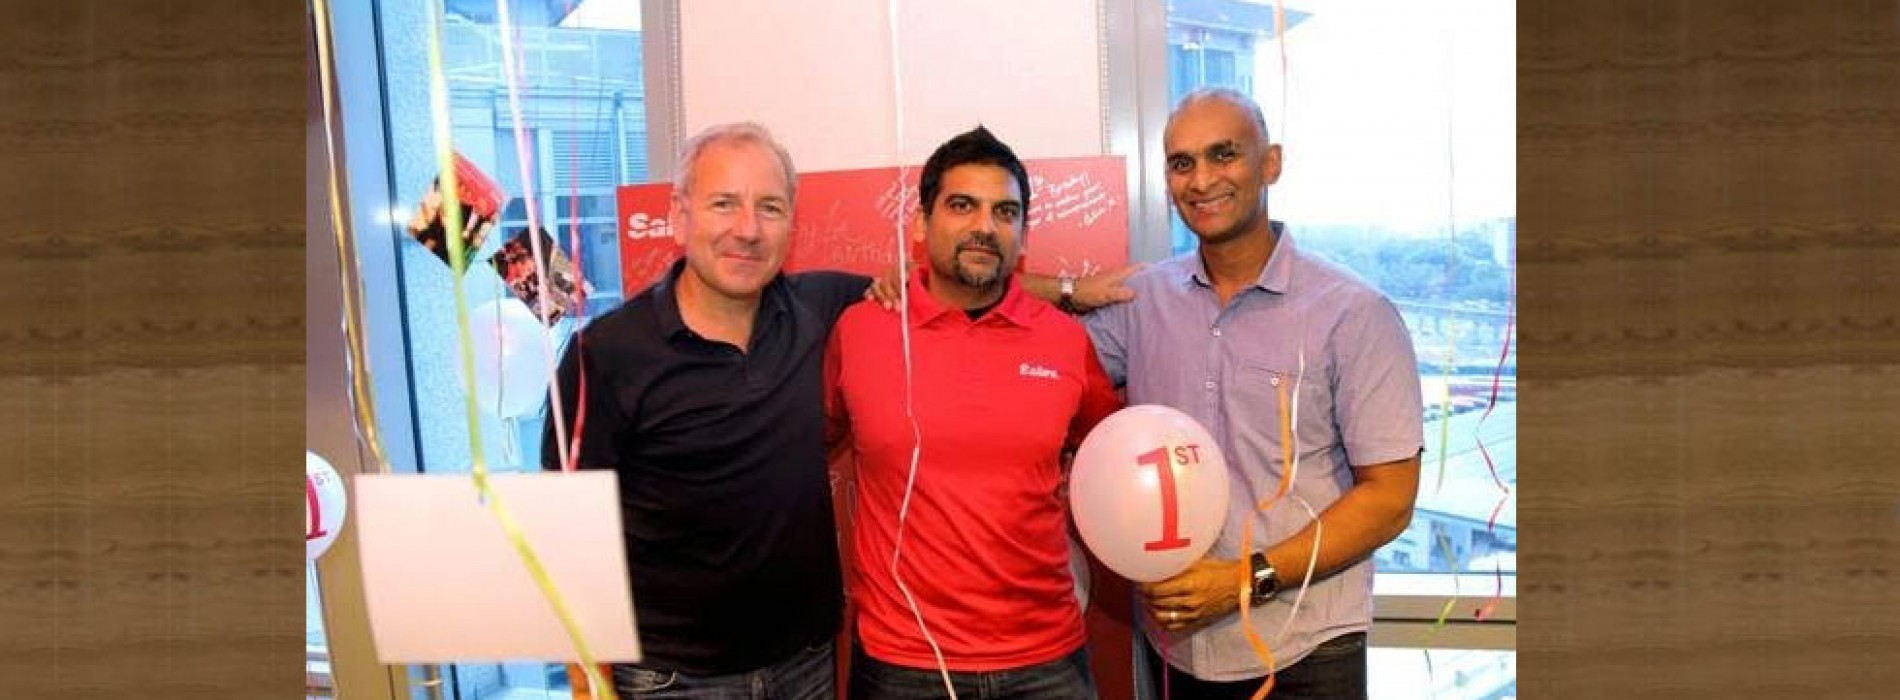 Sabre Travel Network celebrates a year of growth in Asia Pacific